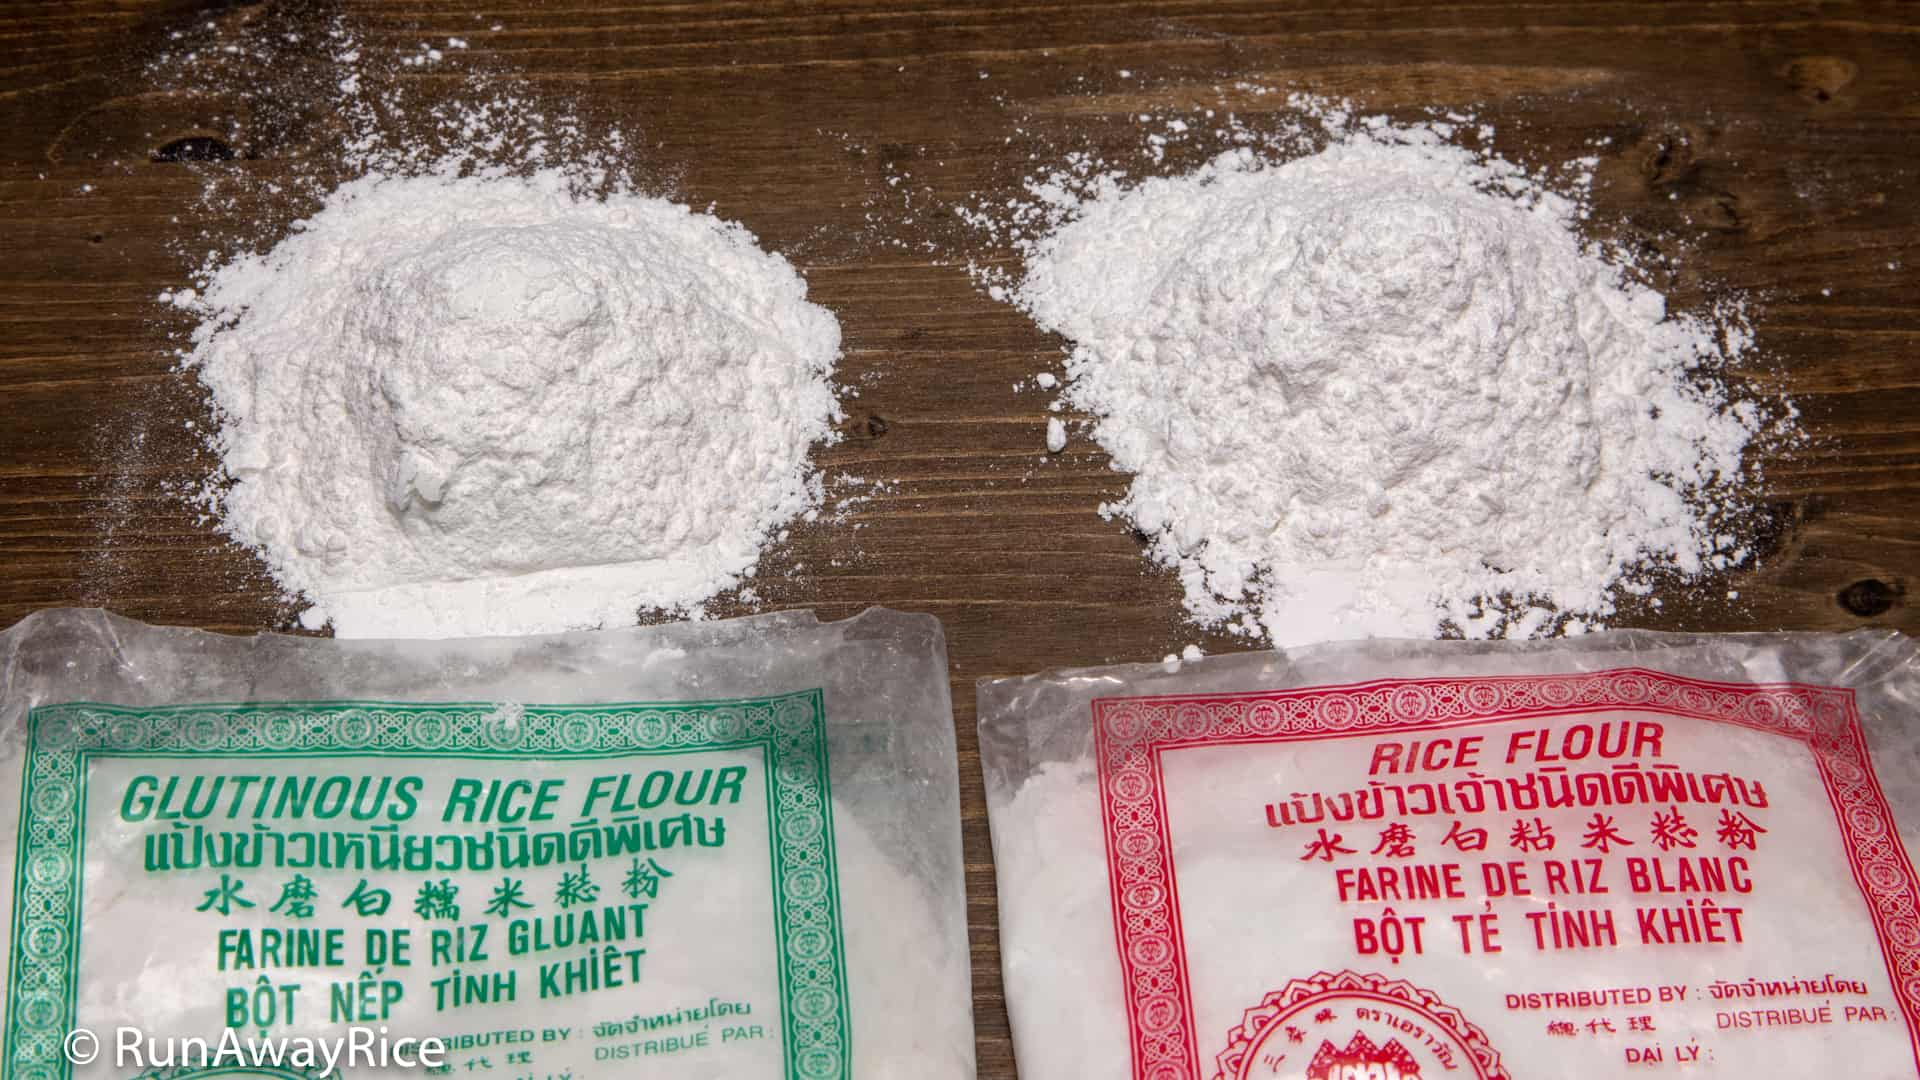 1 Cup Rice Flour And Glutinous Weigh About The Same Approximately 46 Ounces 130 Grams